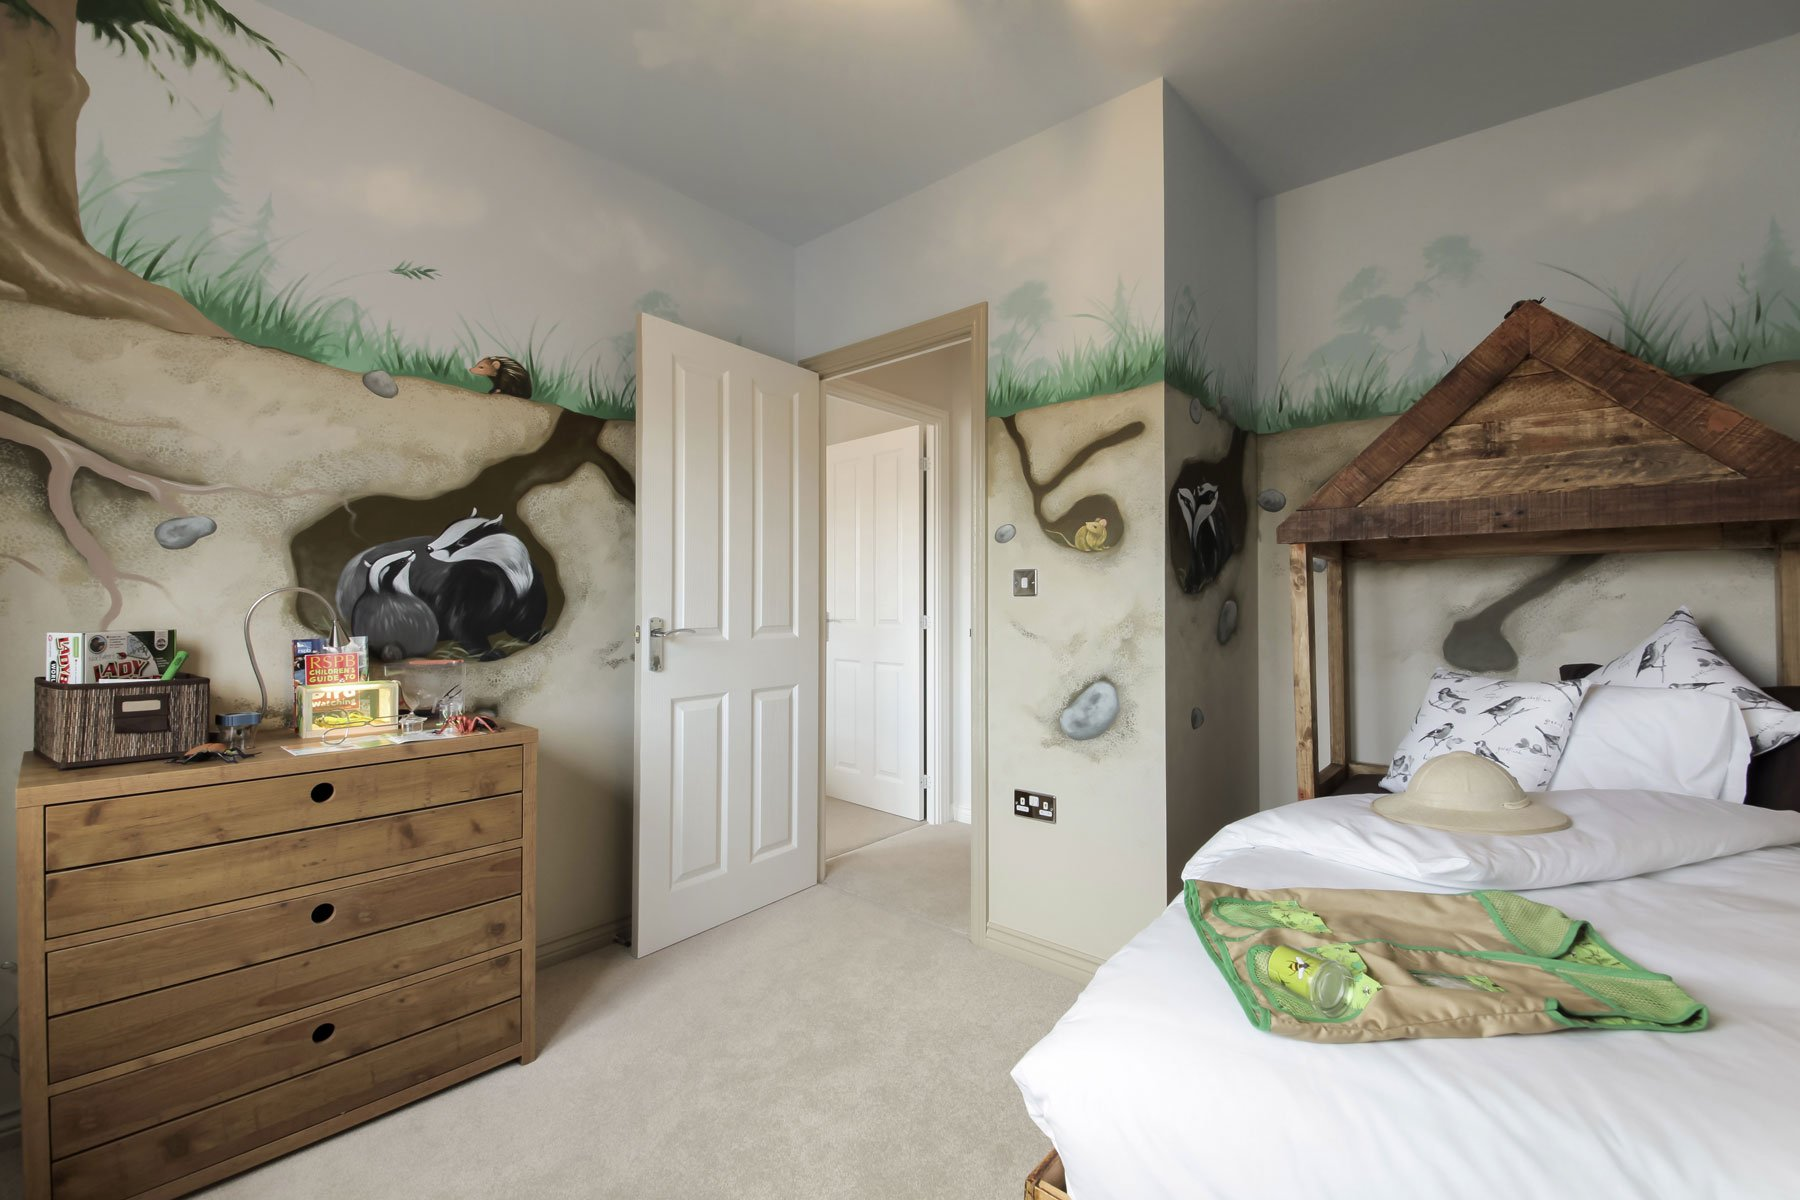 Monkford Childs bedroom